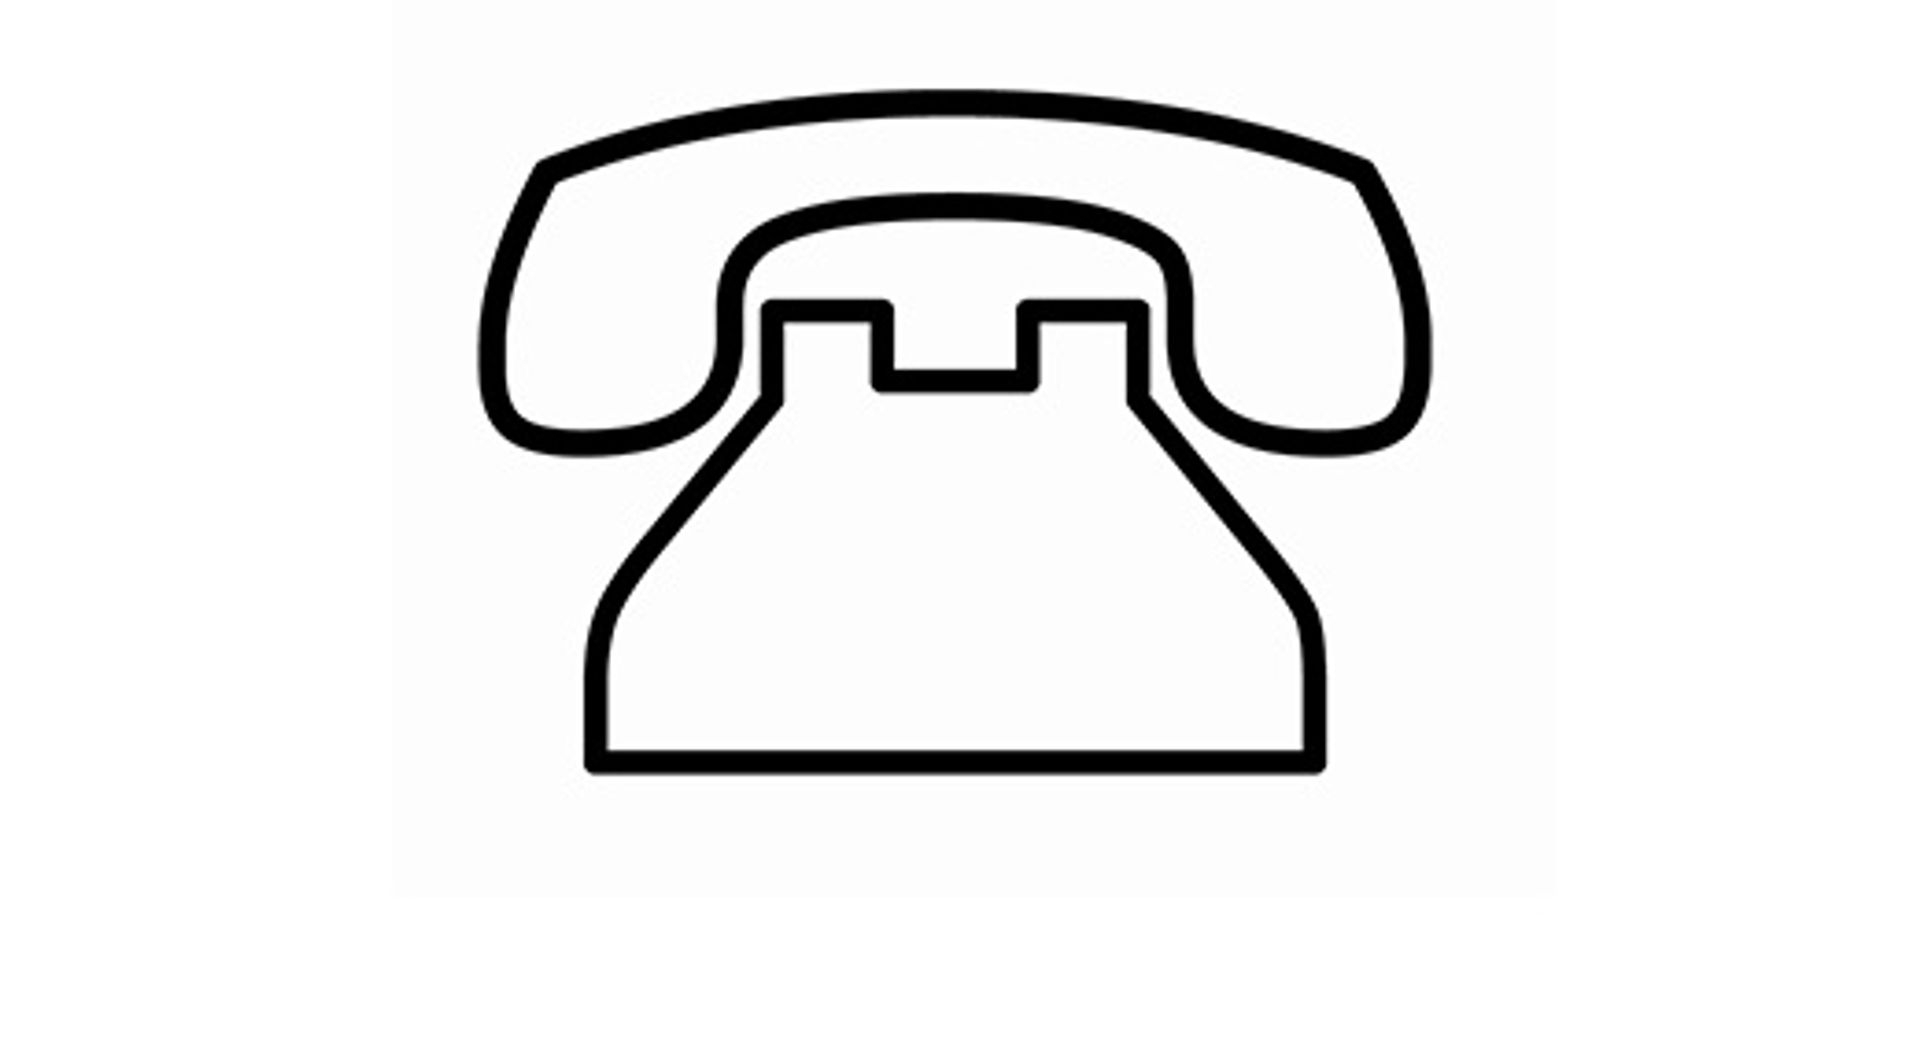 Phone number logo